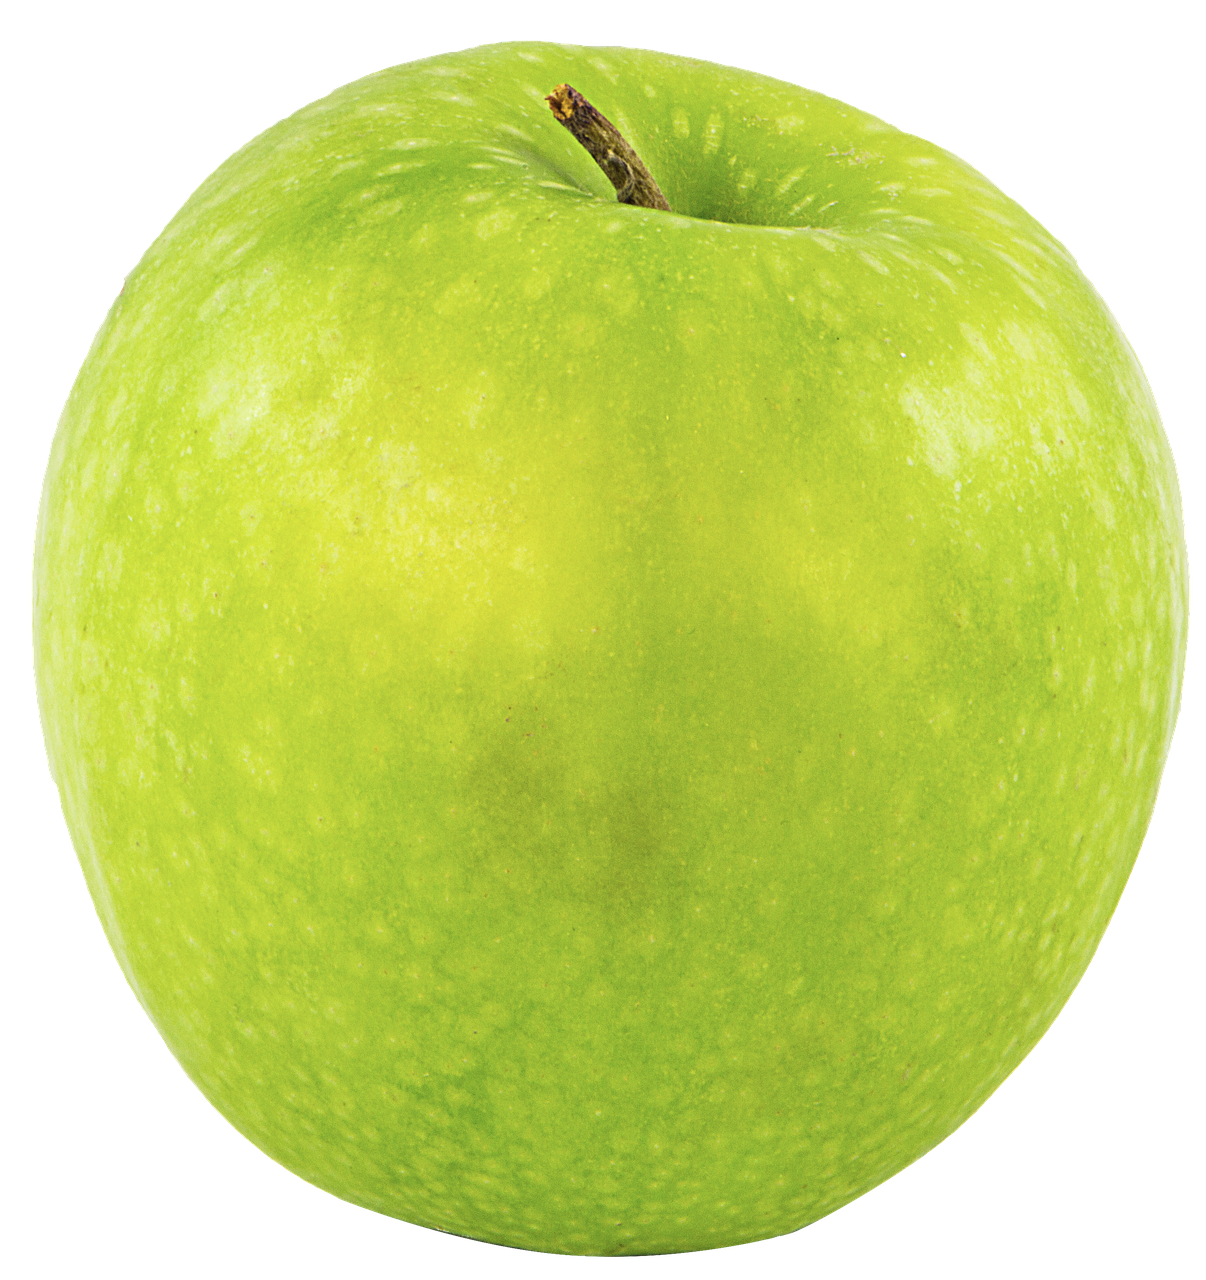 Fruit Apple Png Free Photo On Pixabay Apple png cliparts, all these png images has no background, free & unlimited downloads. https creativecommons org licenses publicdomain